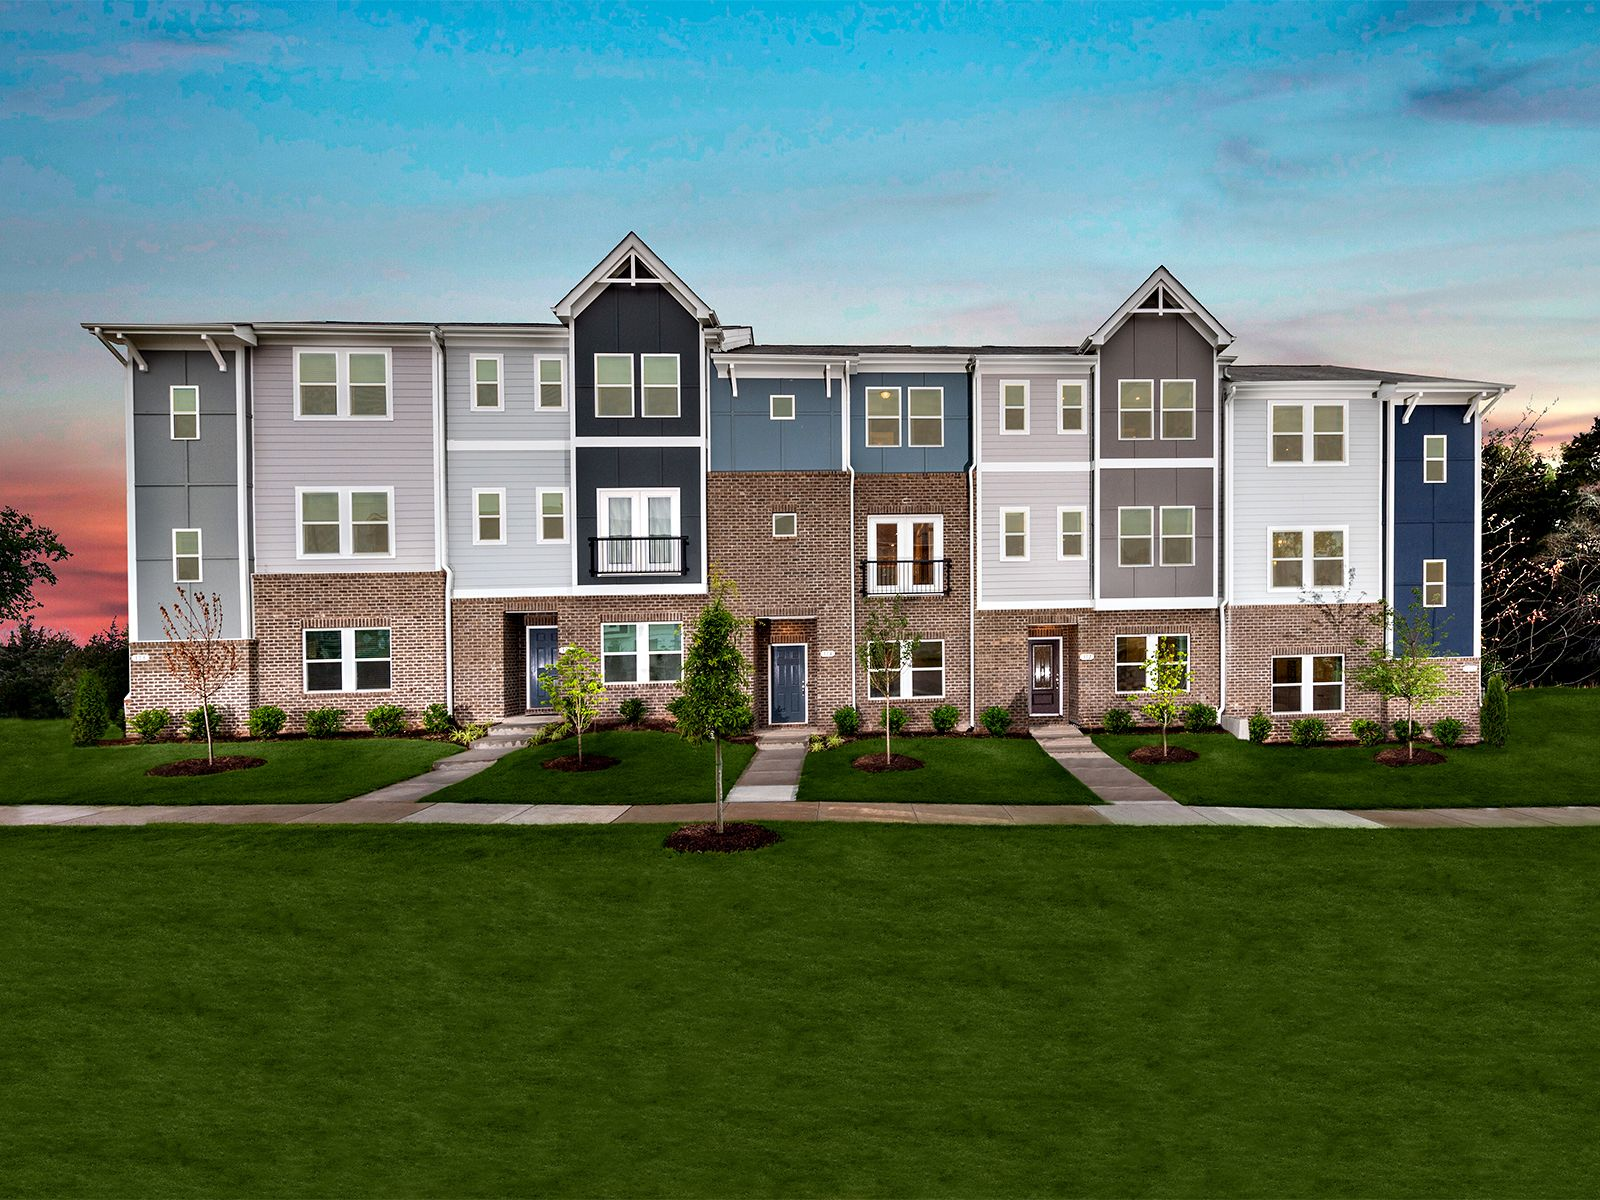 Brickyard Townhomes,27519